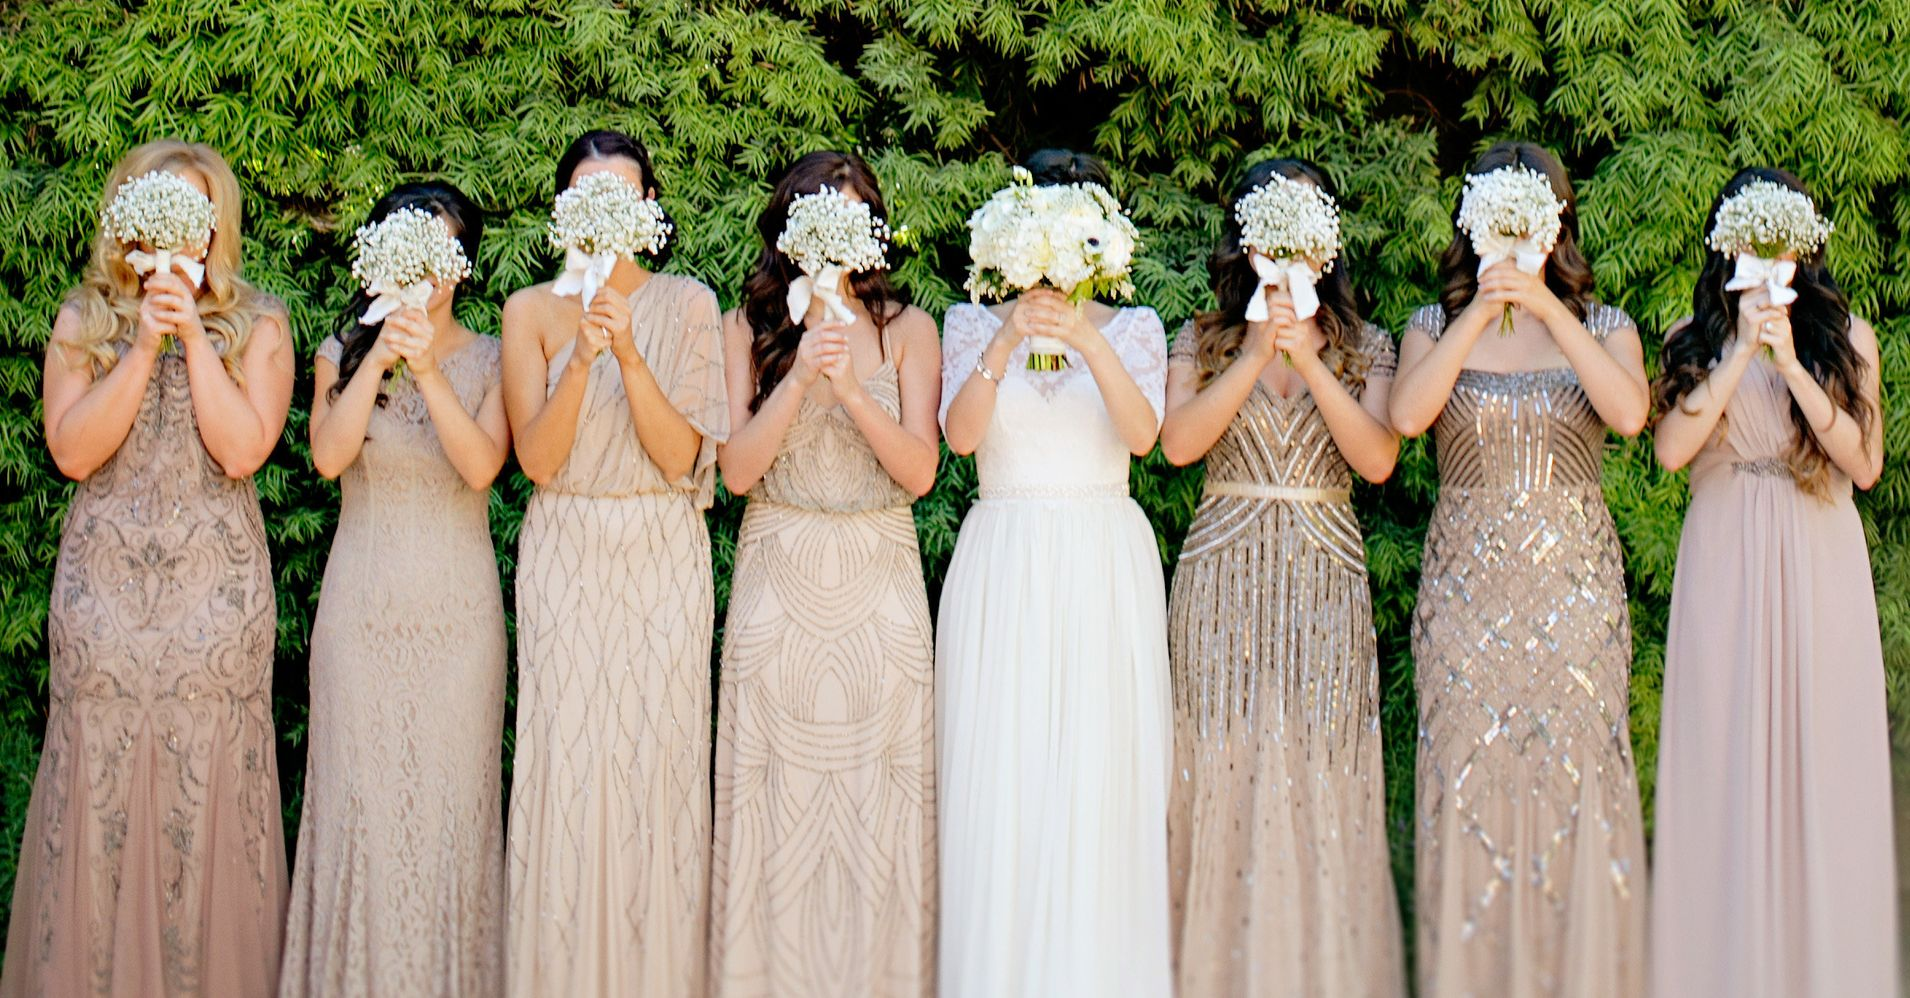 b9d1f395 20 Bridal Parties Who Flawlessly Executed The Mismatched Dress Trend |  HuffPost Life